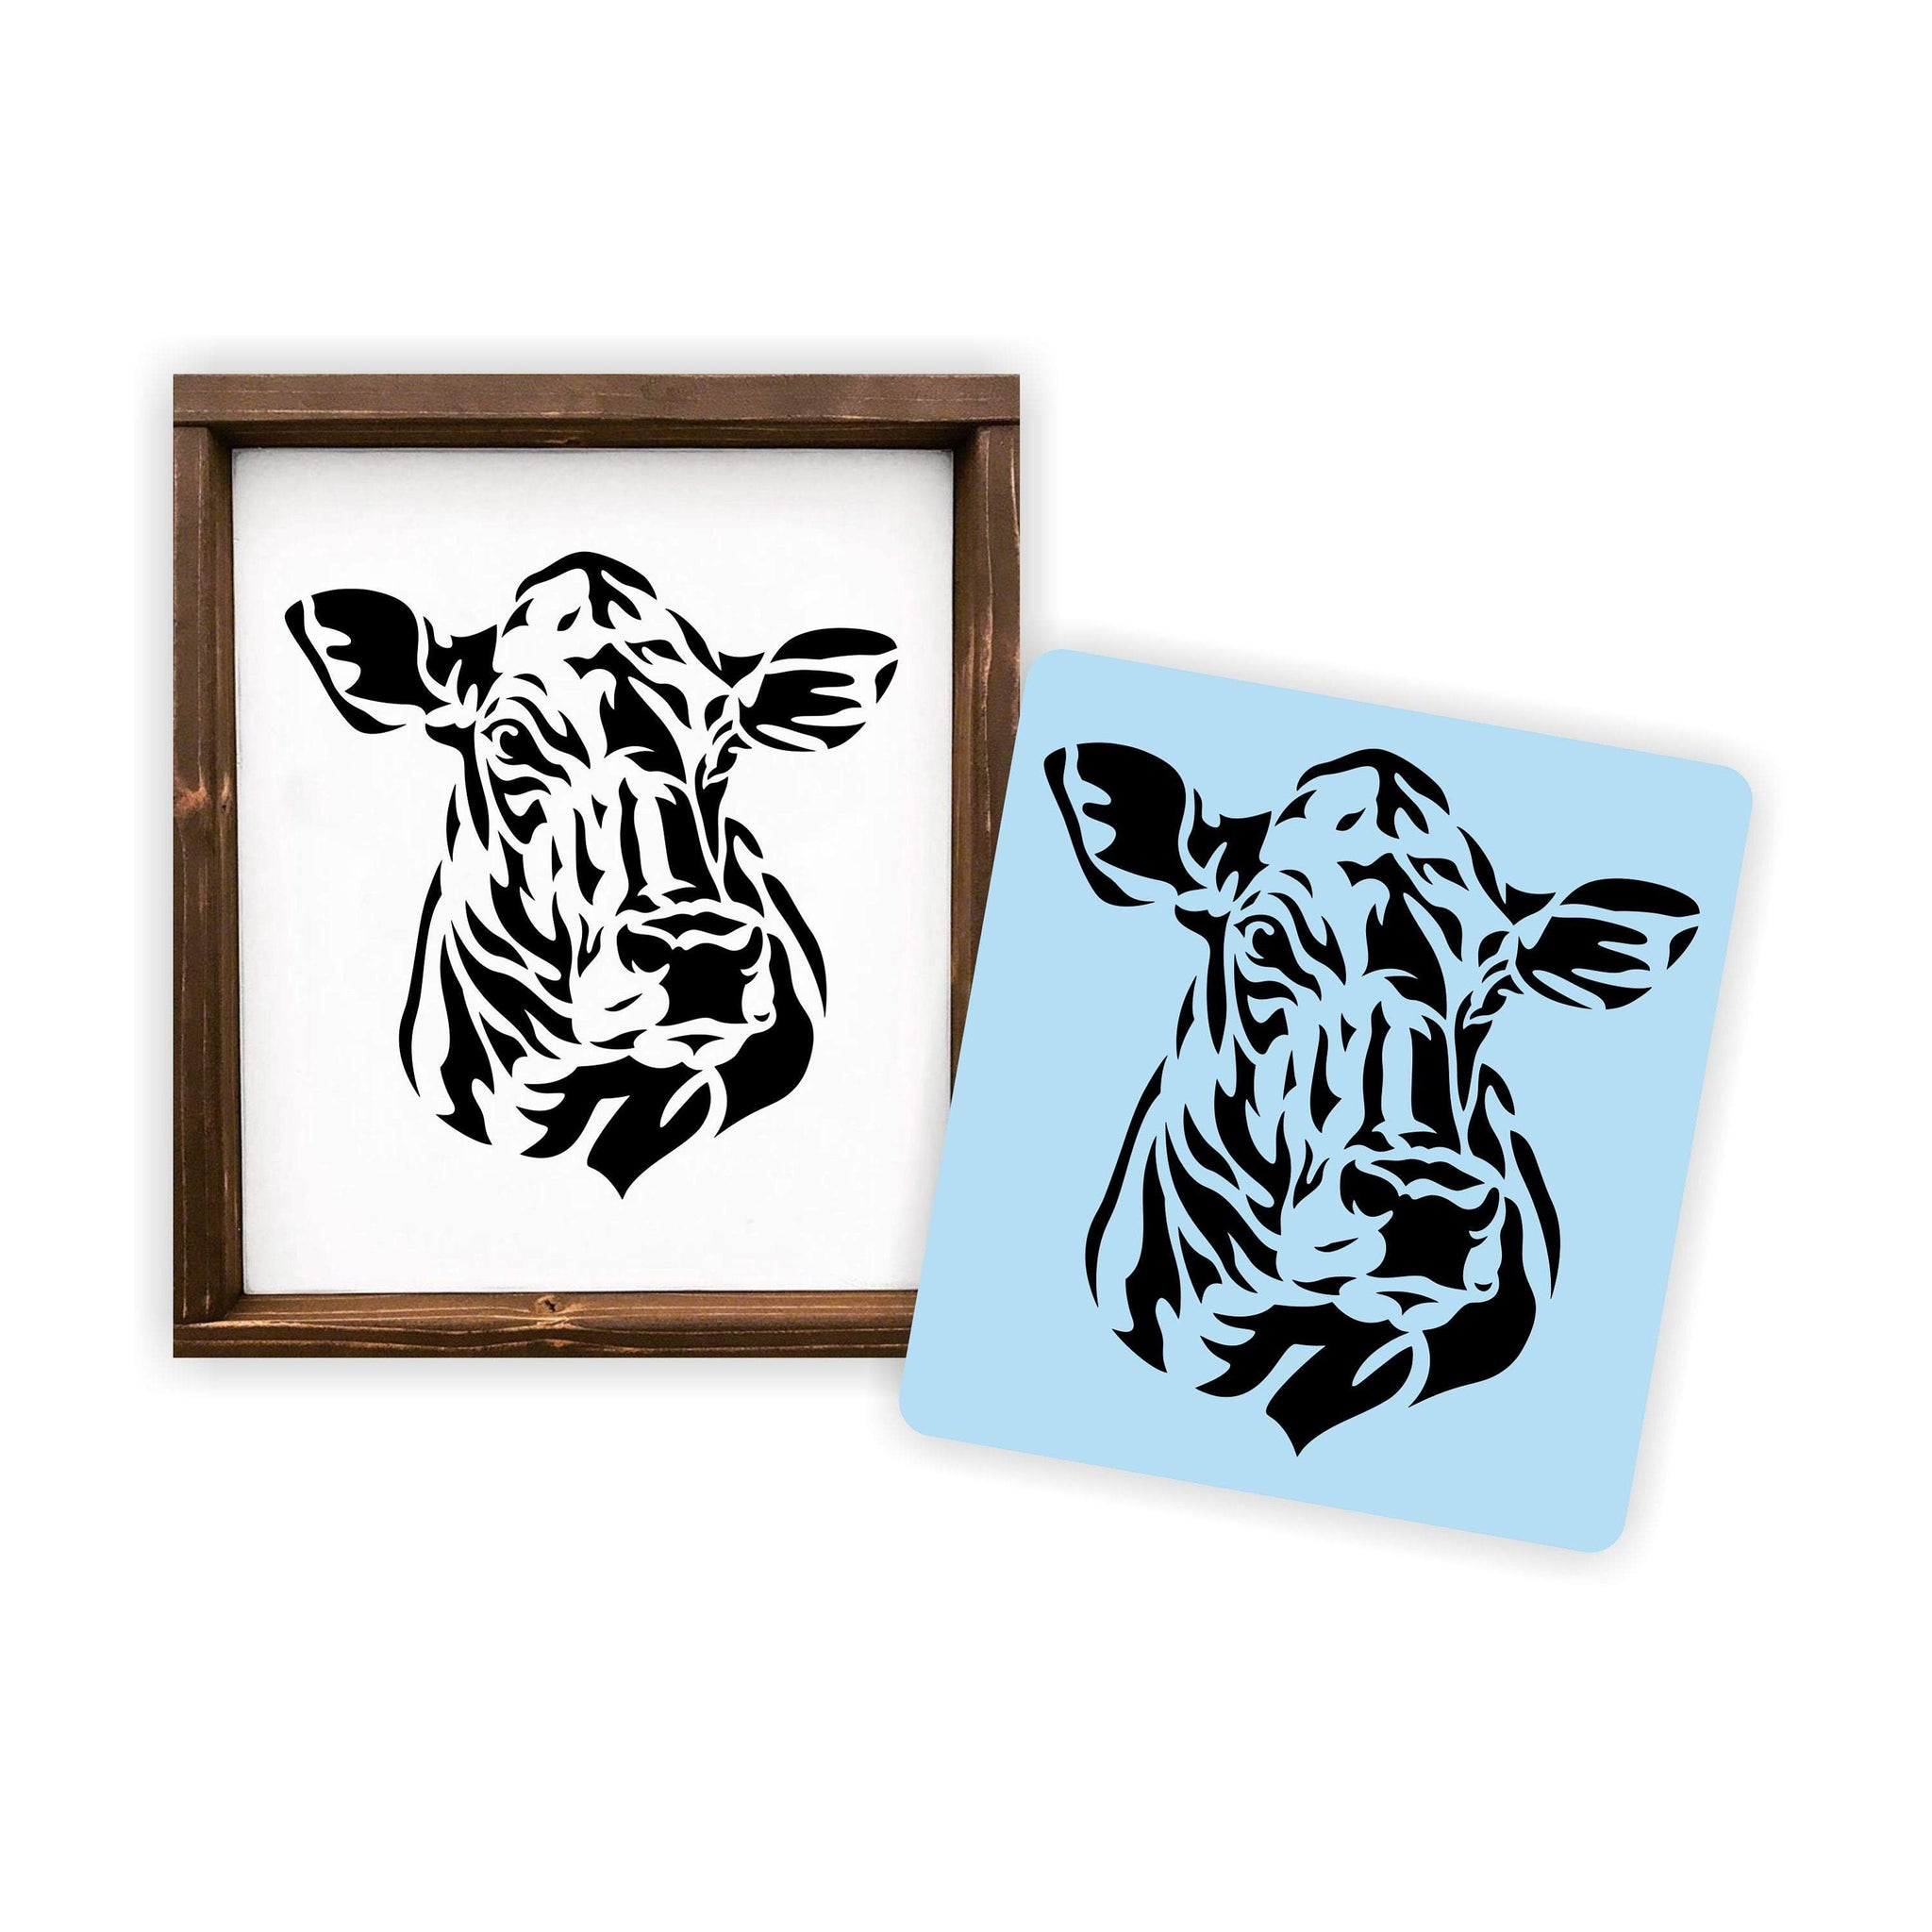 Swiss Cow Stencil, Reusable, Paint Your Own Wood Sign